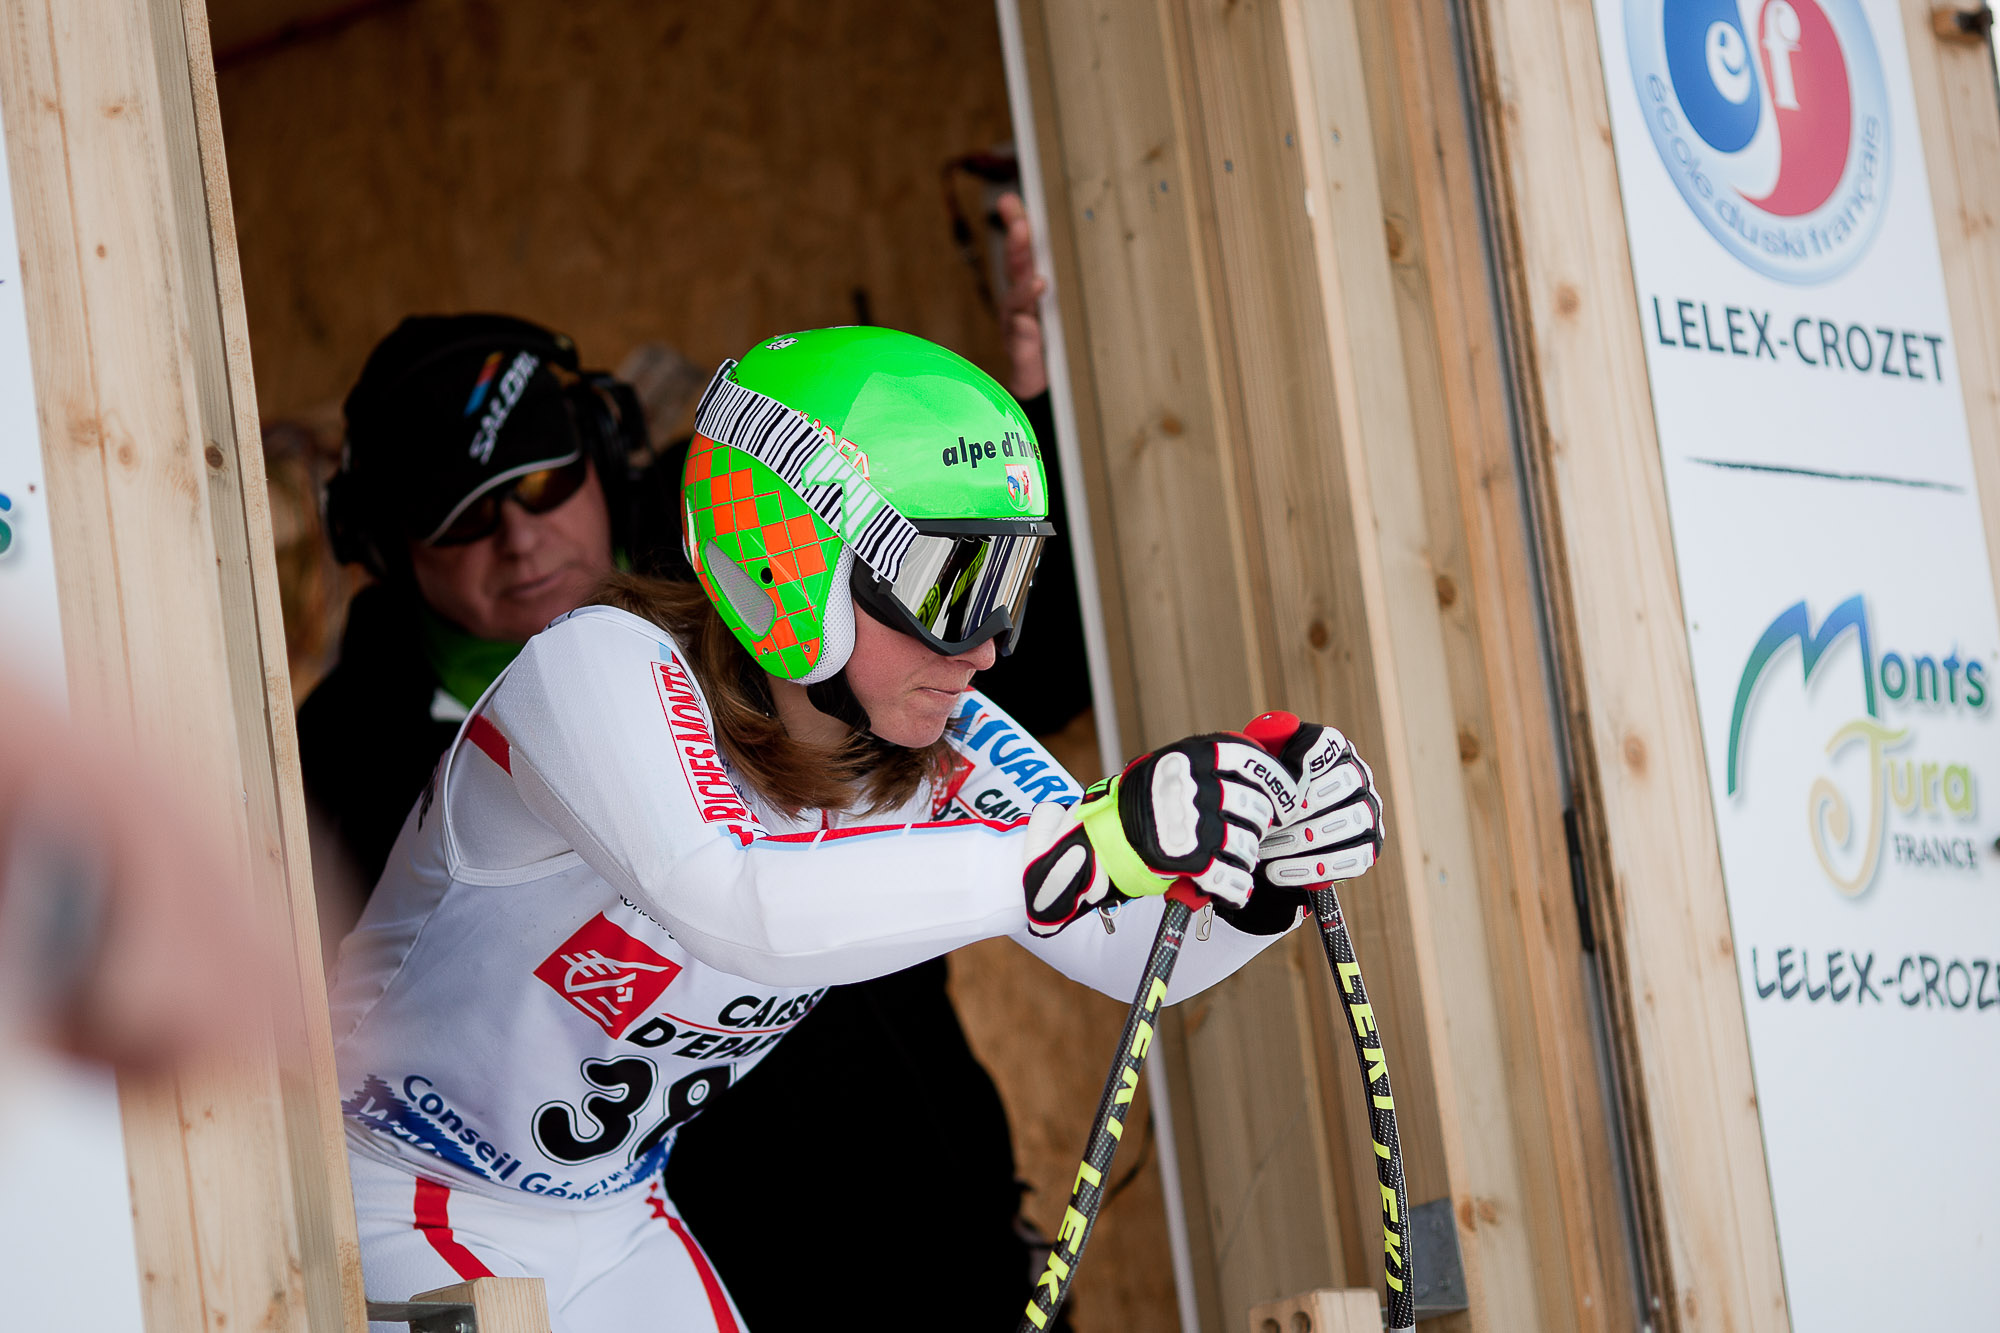 Coupe_Europe_ski_dames-260.jpg